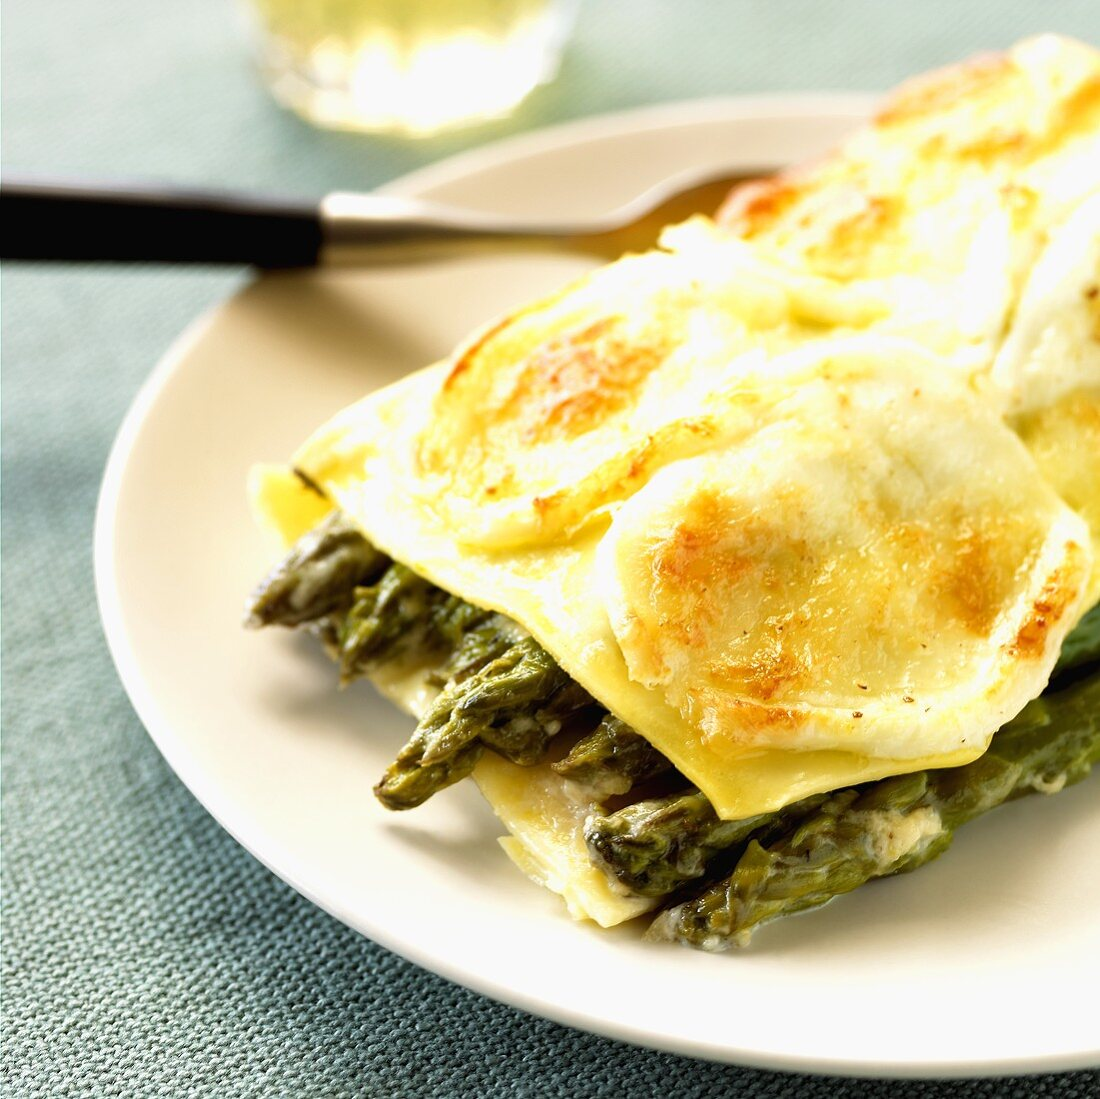 A portion of asparagus lasagne on a plate